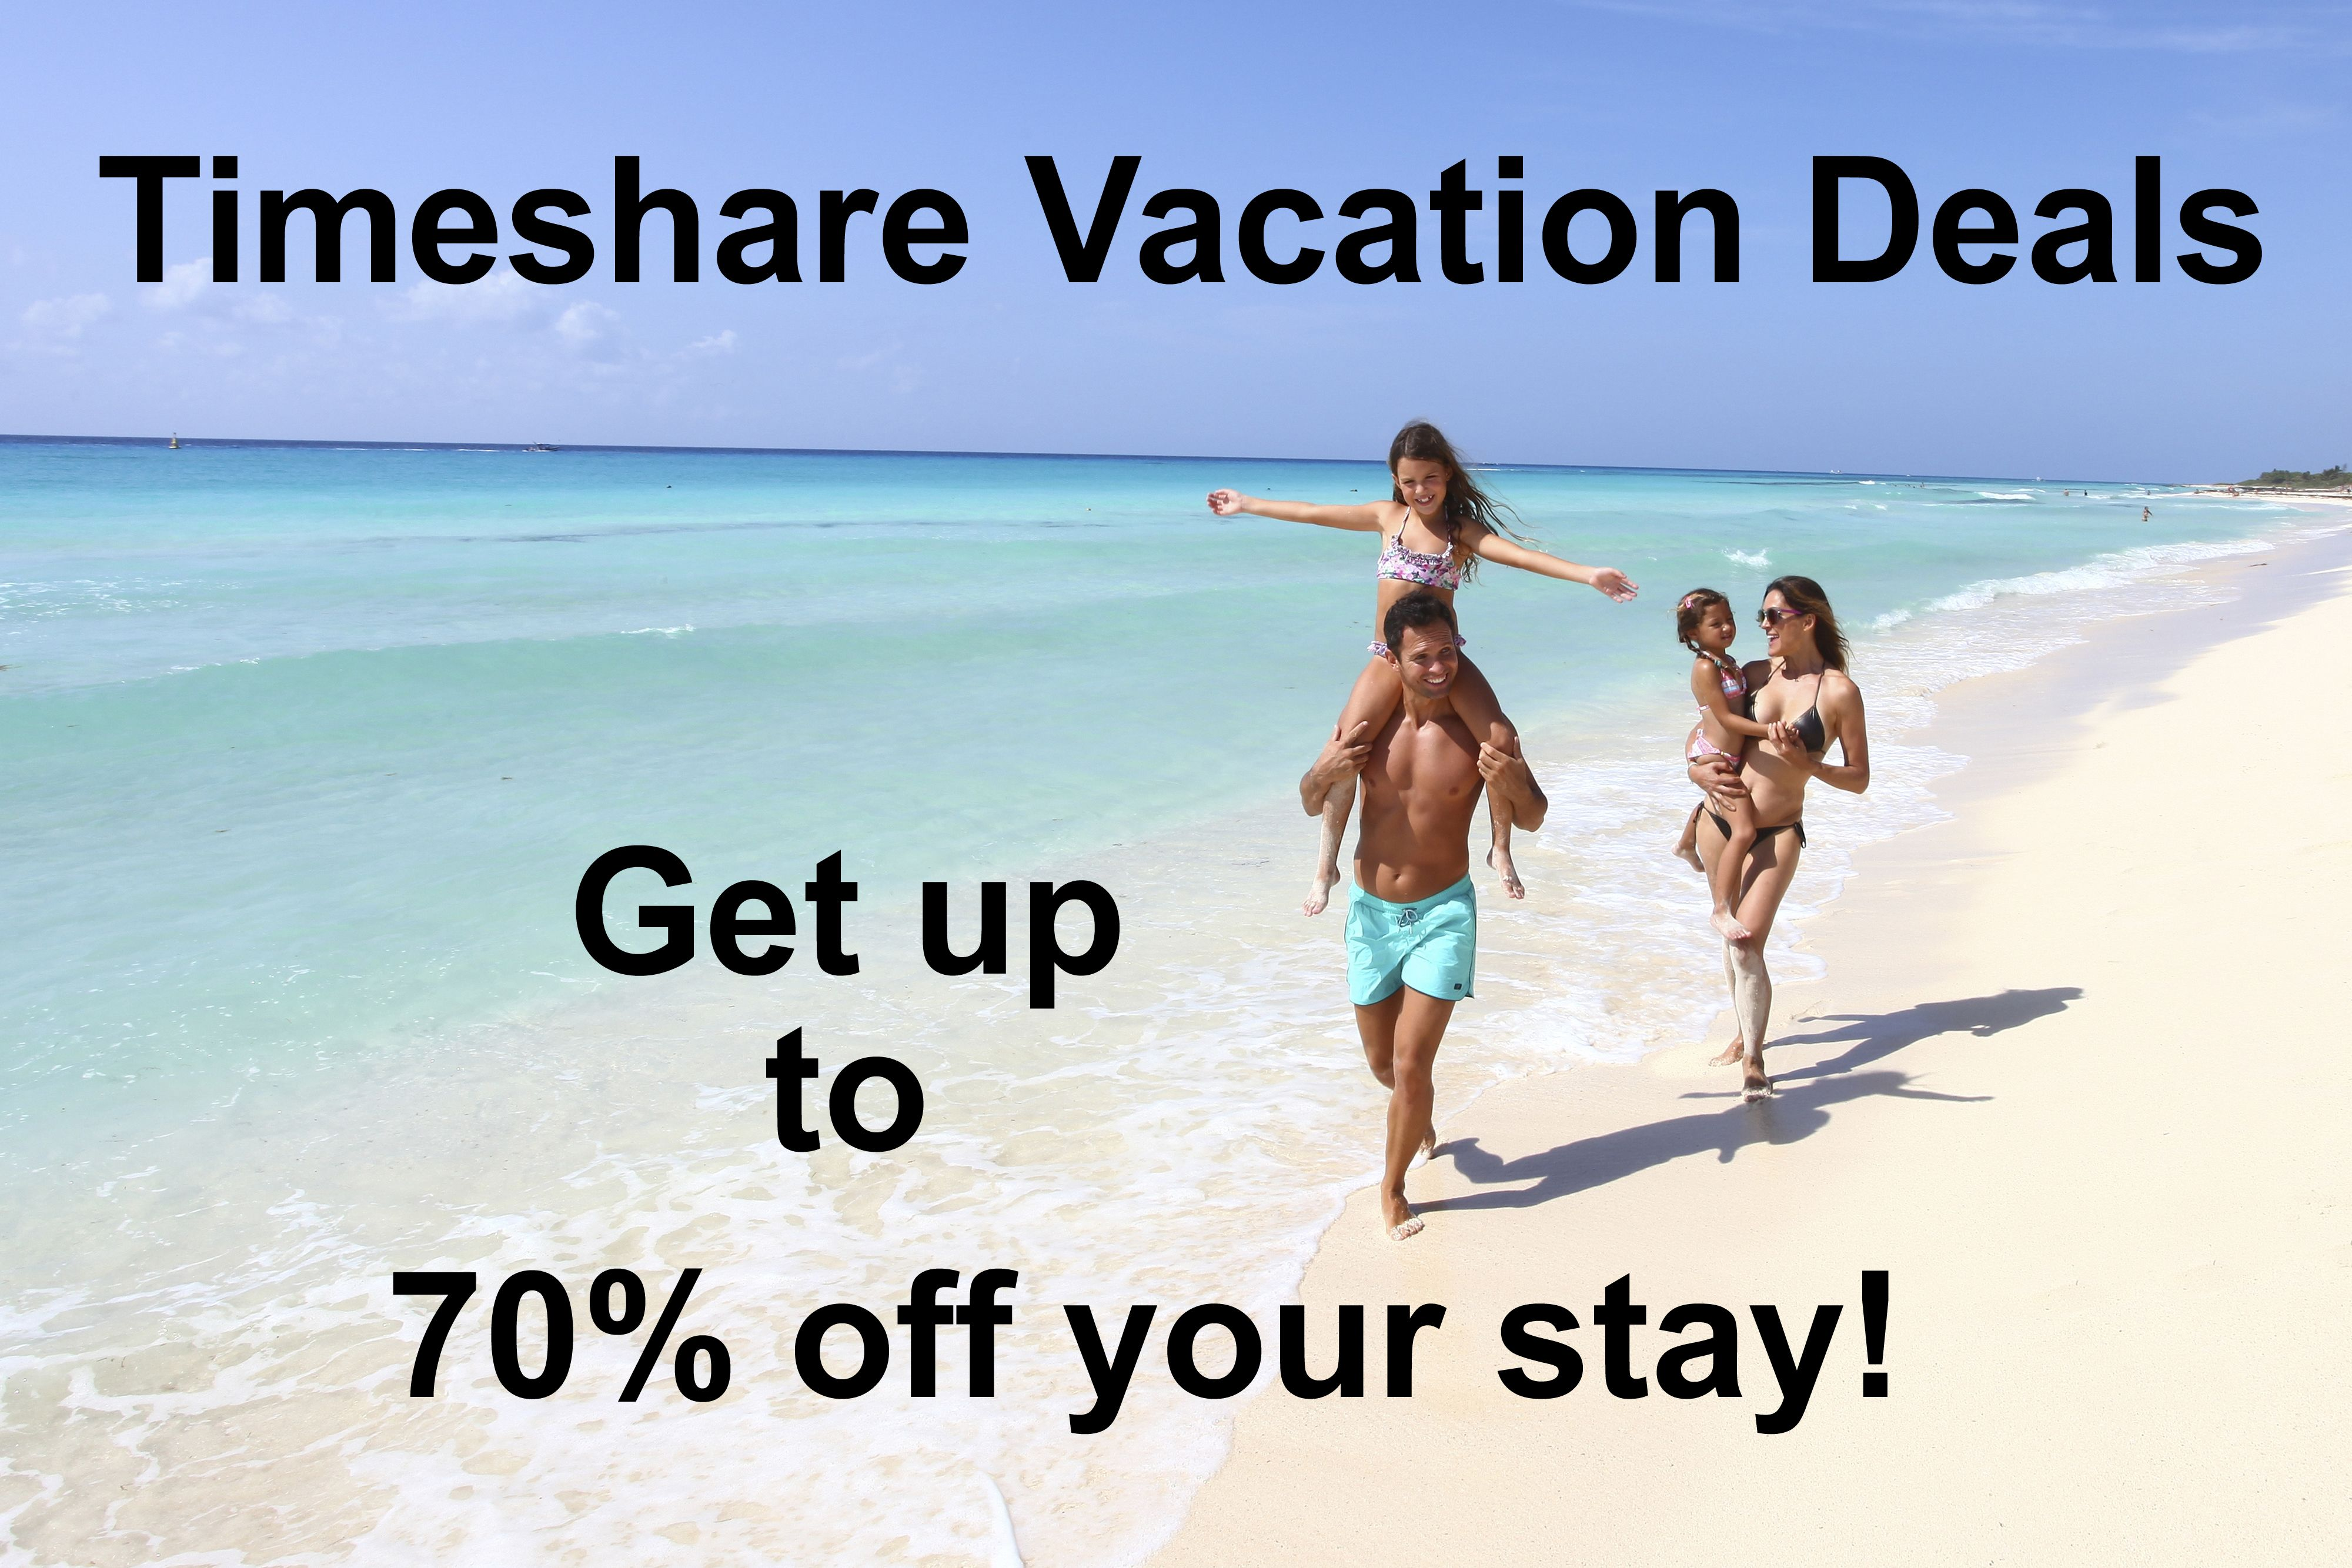 Sandos All Inclusive Timeshare Promotion In Cancun Playa Del